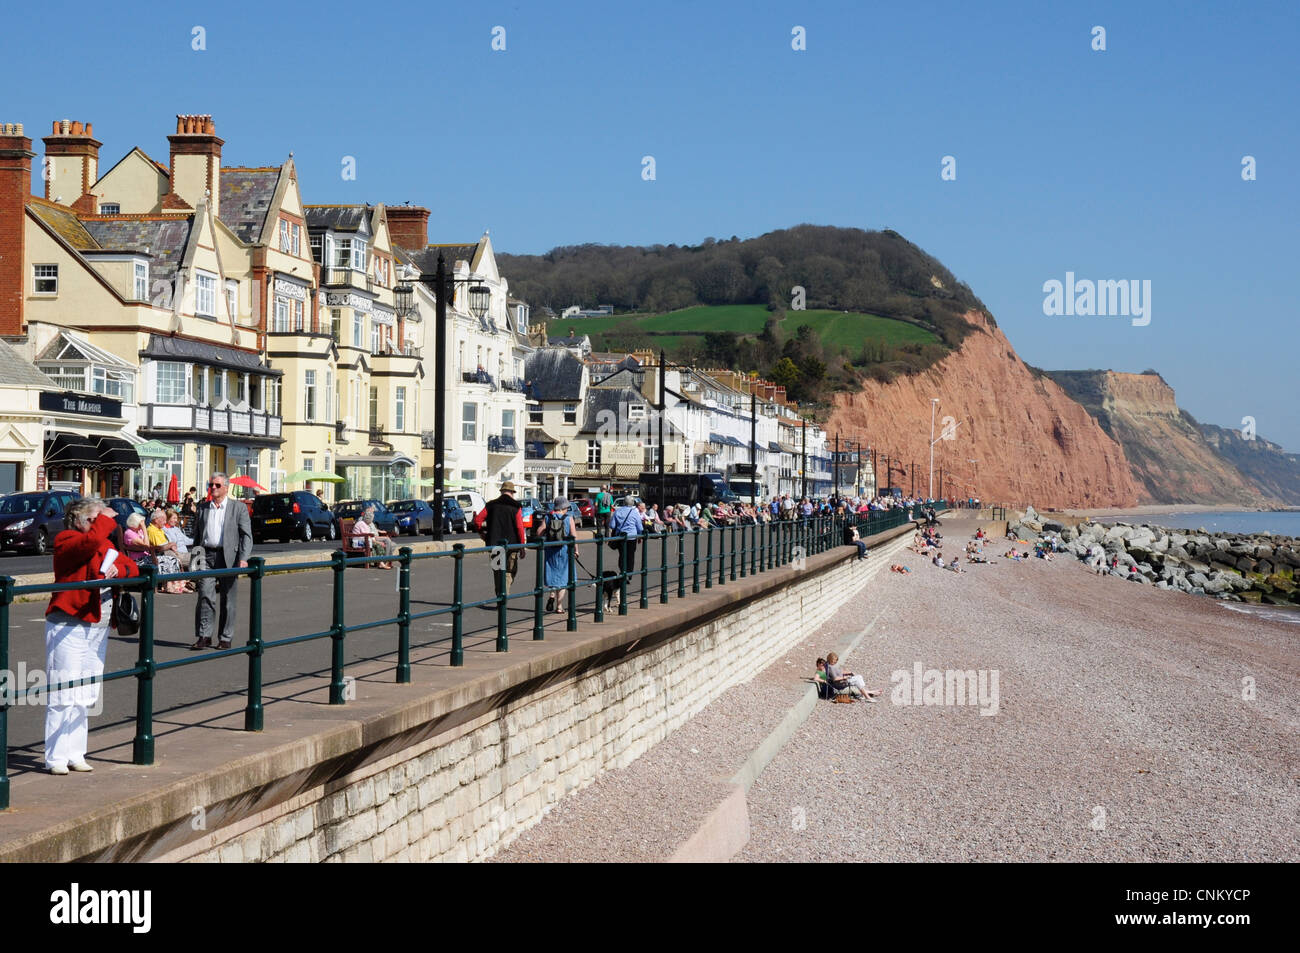 Holidaymakers on the Esplanade, Sidmouth, Devon, England, UK - Stock Image